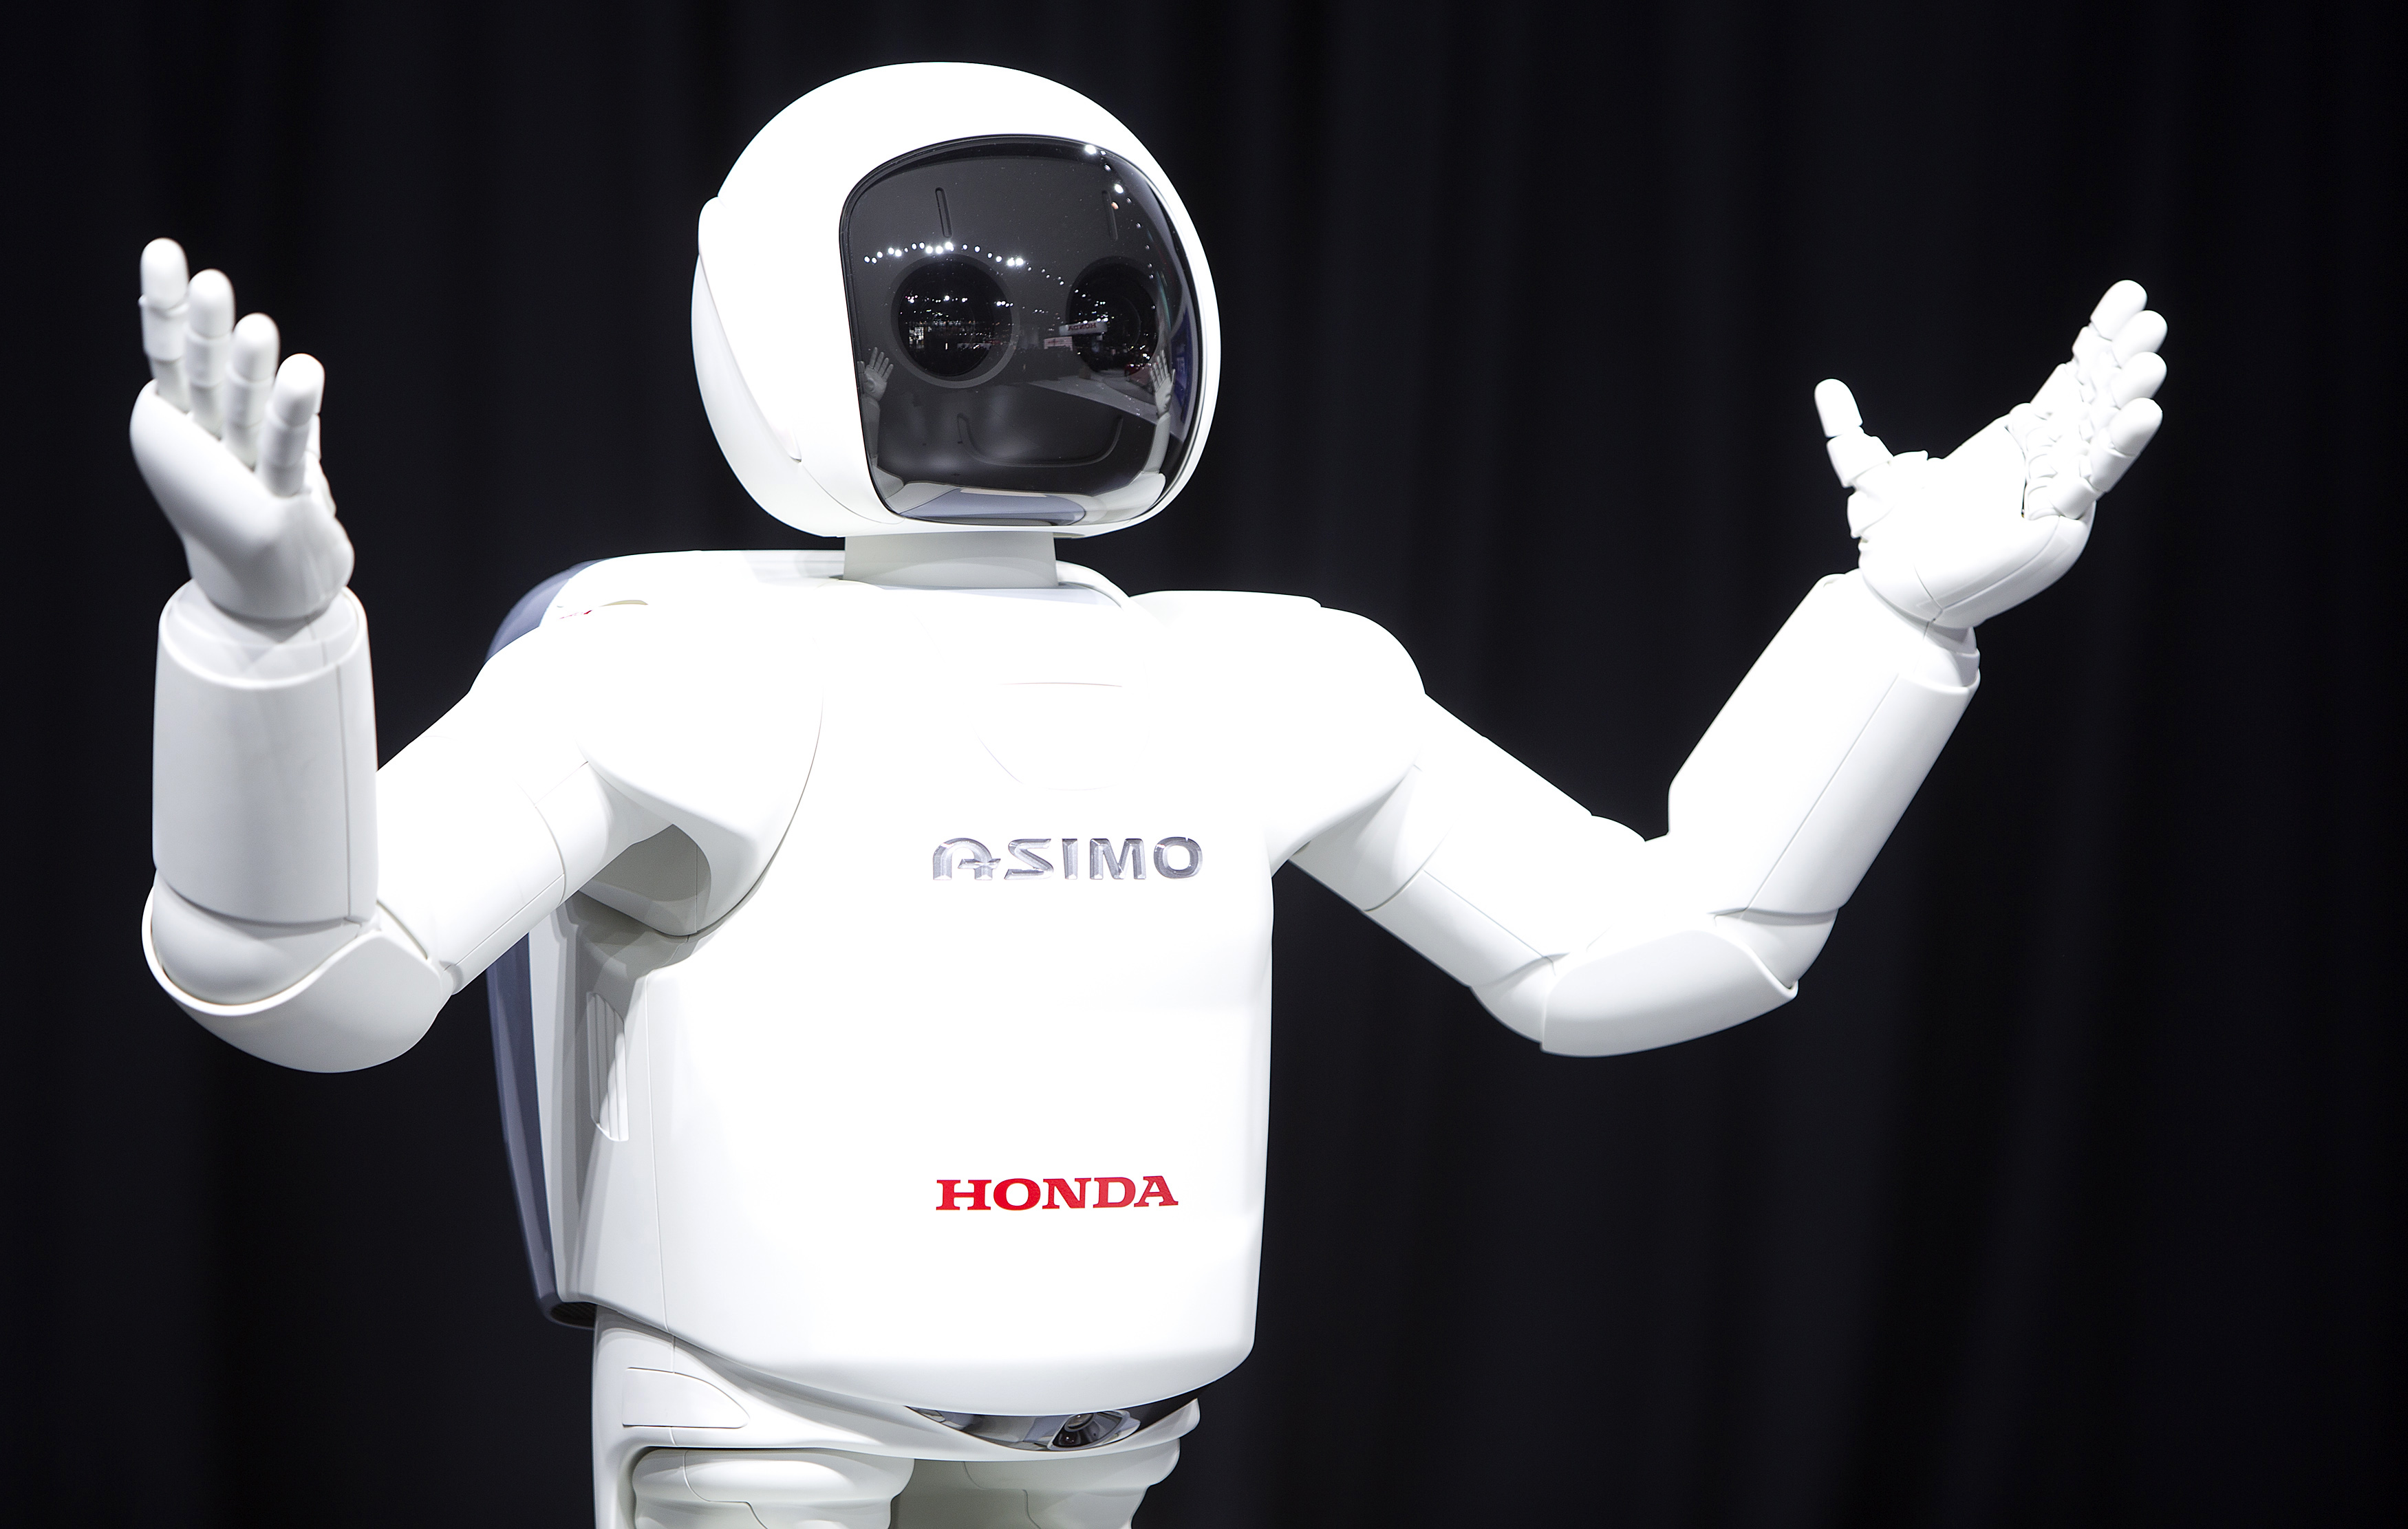 Honda Motor's Asimo robot puts on a demonstration for the media at the Jacob Javits Convention Center during the New York International Auto Show in New York April 17, 2014.  REUTERS/Carlo Allegri (UNITED STATES - Tags: TRANSPORT BUSINESS)